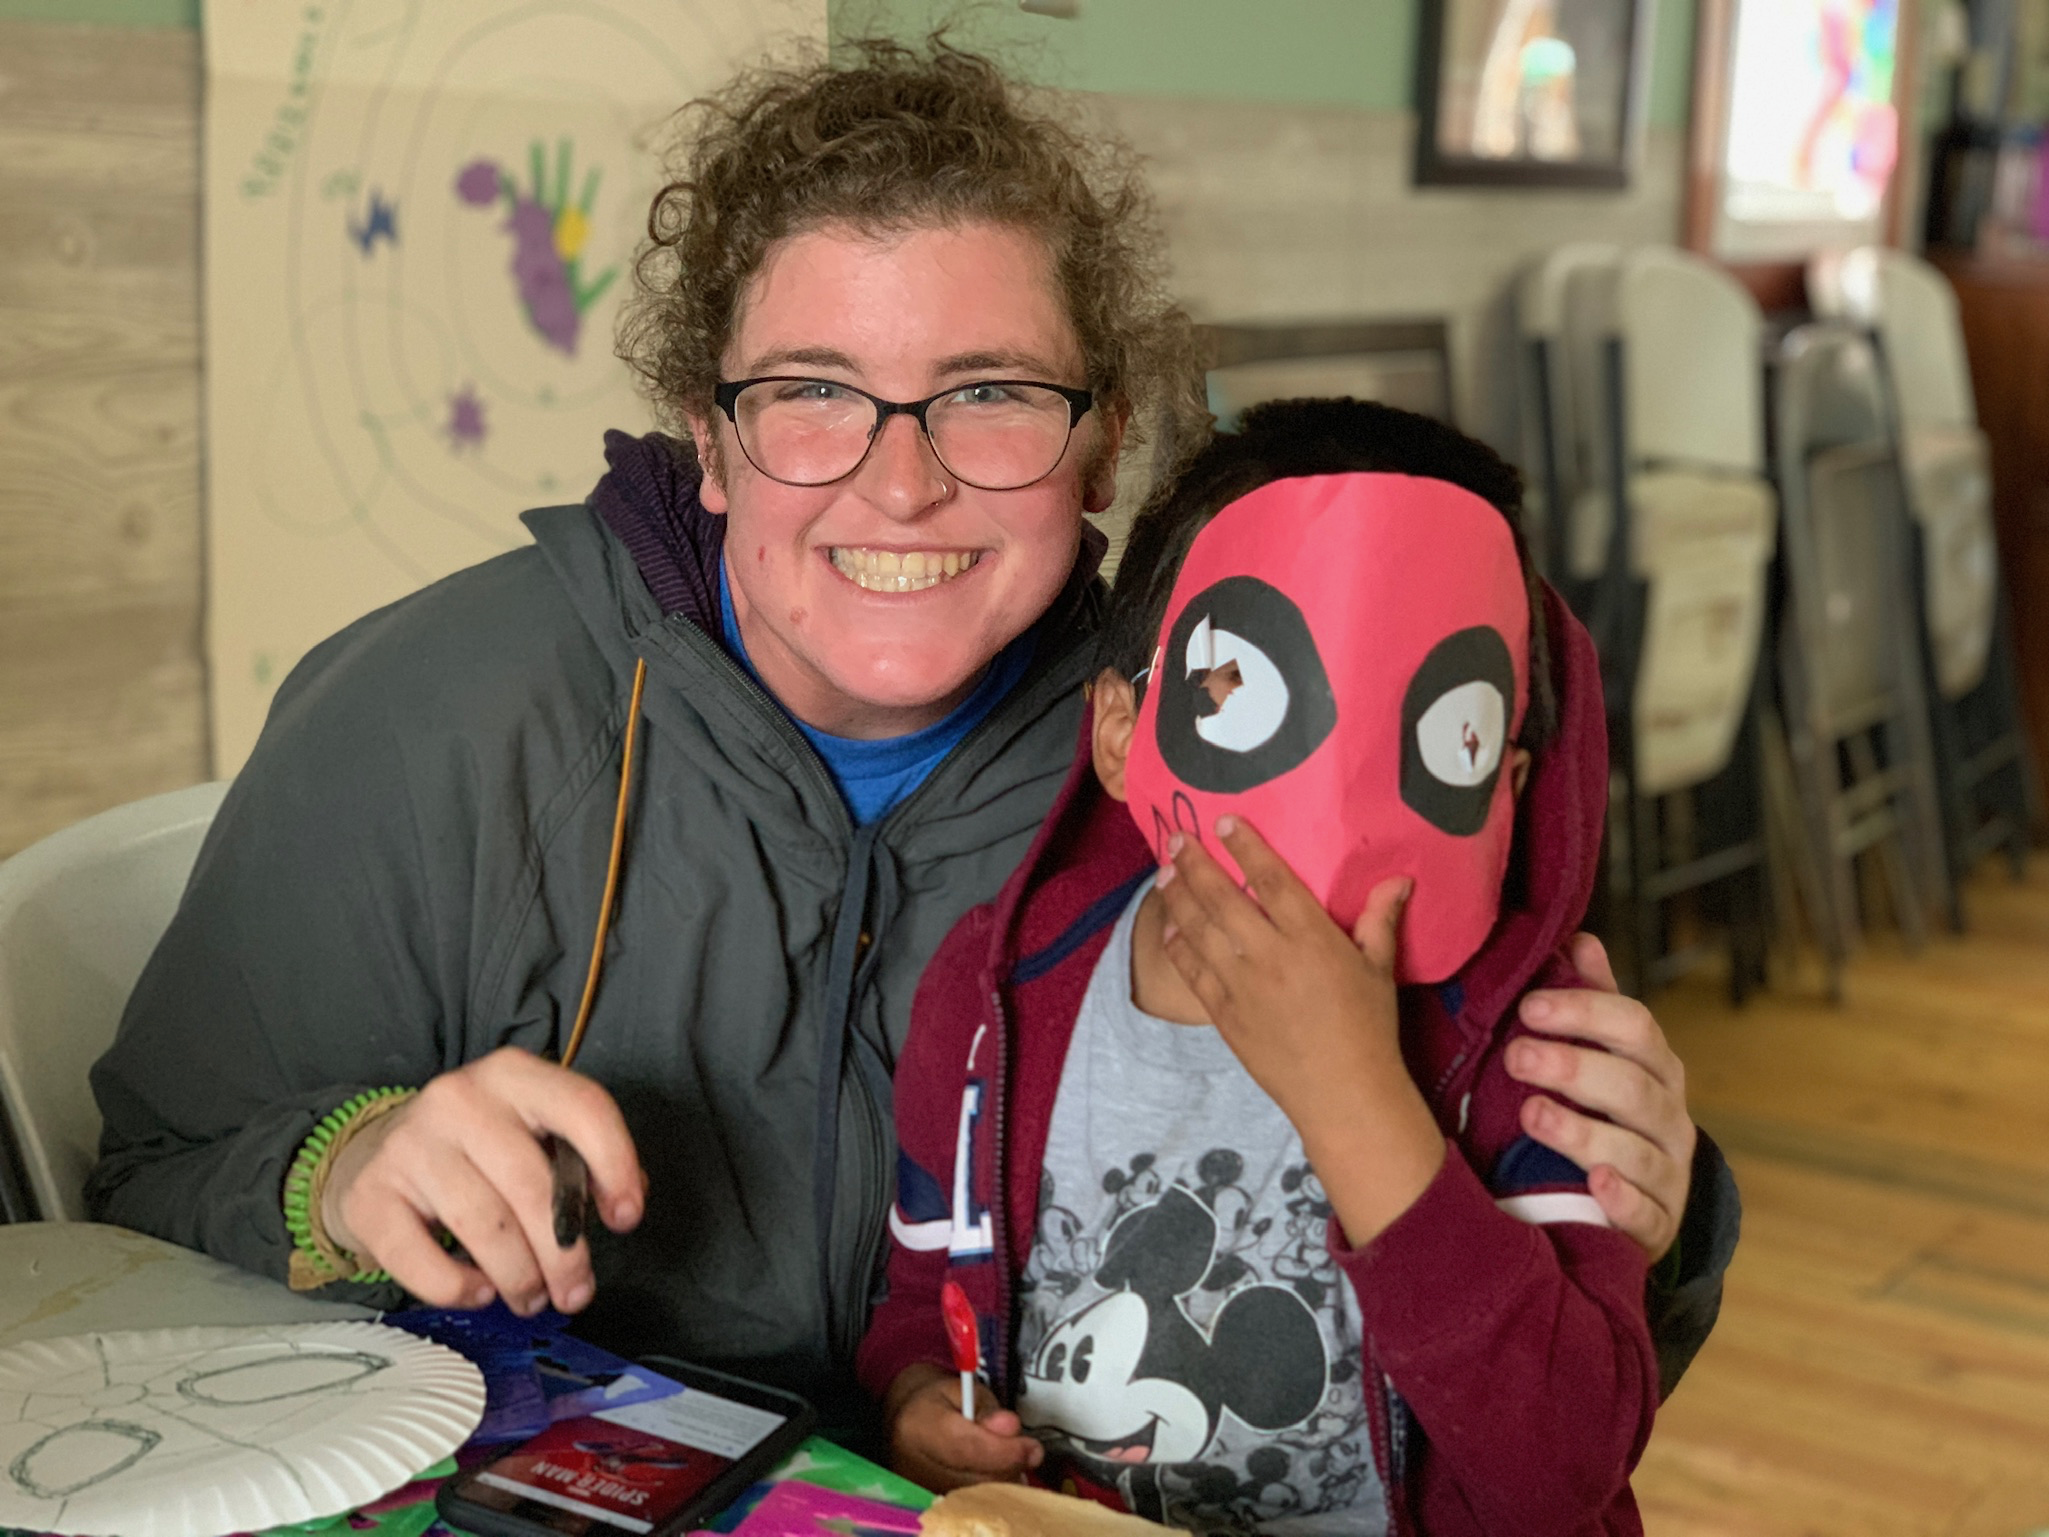 Anything is possible at Simply Smiles Summer Camp,  including becoming beloved superheroes like Spider-Man!